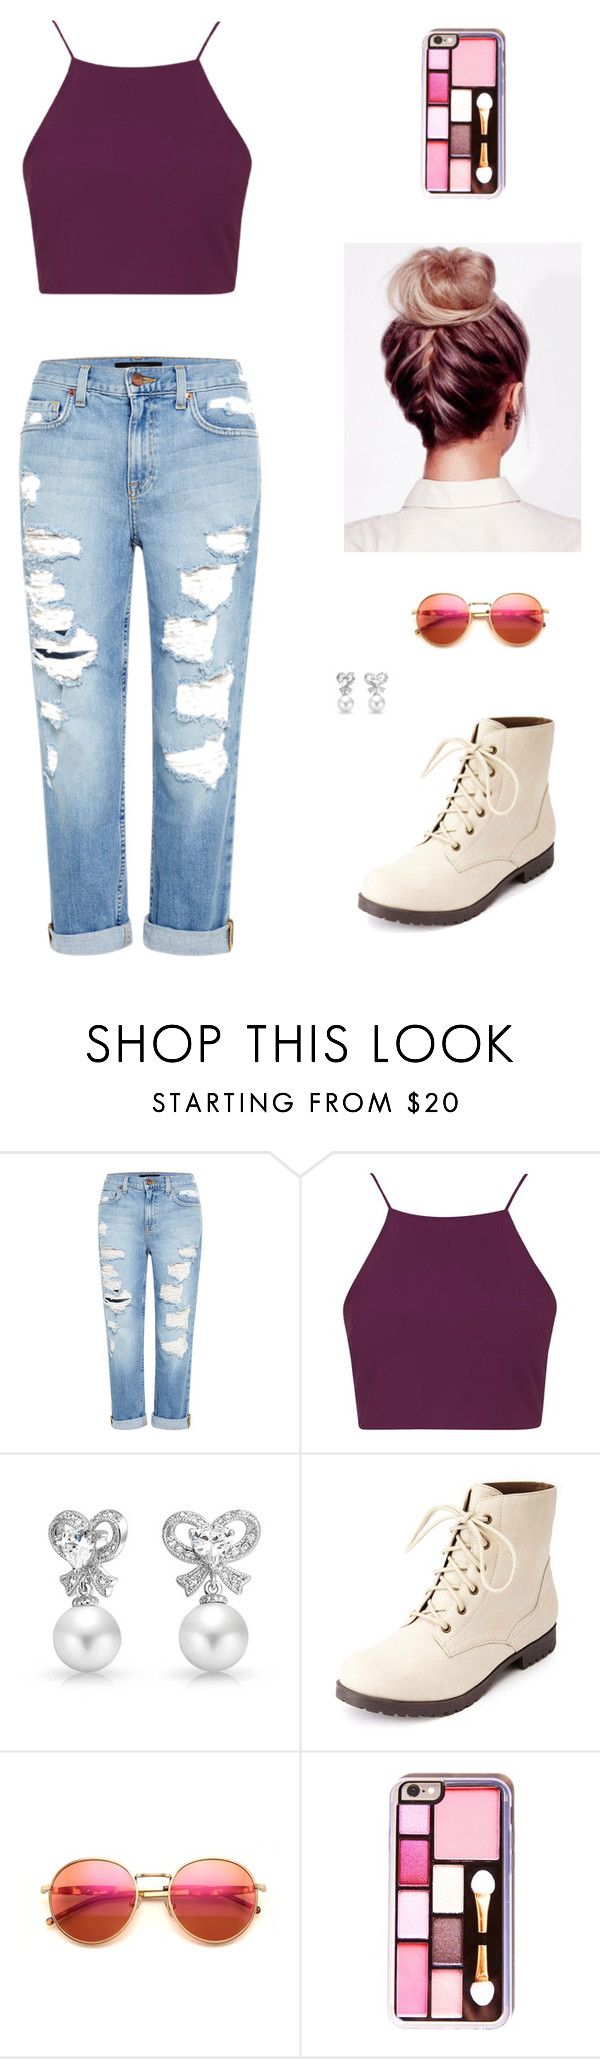 """""""uhhh"""" by emily-toelle ❤ liked on Polyvore featuring interior, interiors, interior design, home, home decor, interior decorating, Genetic Denim, Topshop, Bling Jewelry and Charlotte Russe"""